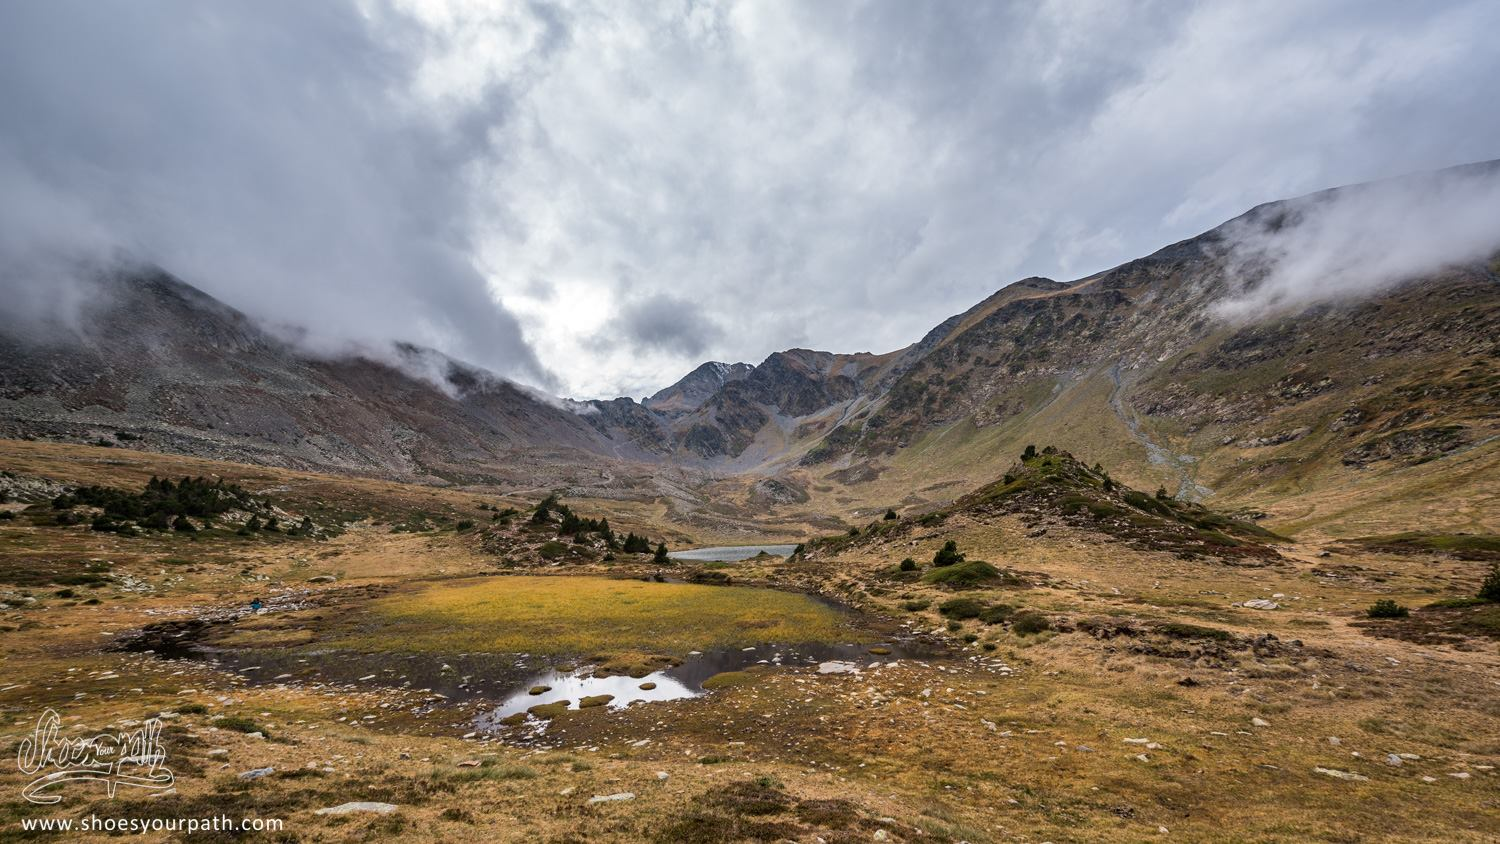 The 12 lakes of the Carlit - Bouillouses - Pyrénées Catalanes, France